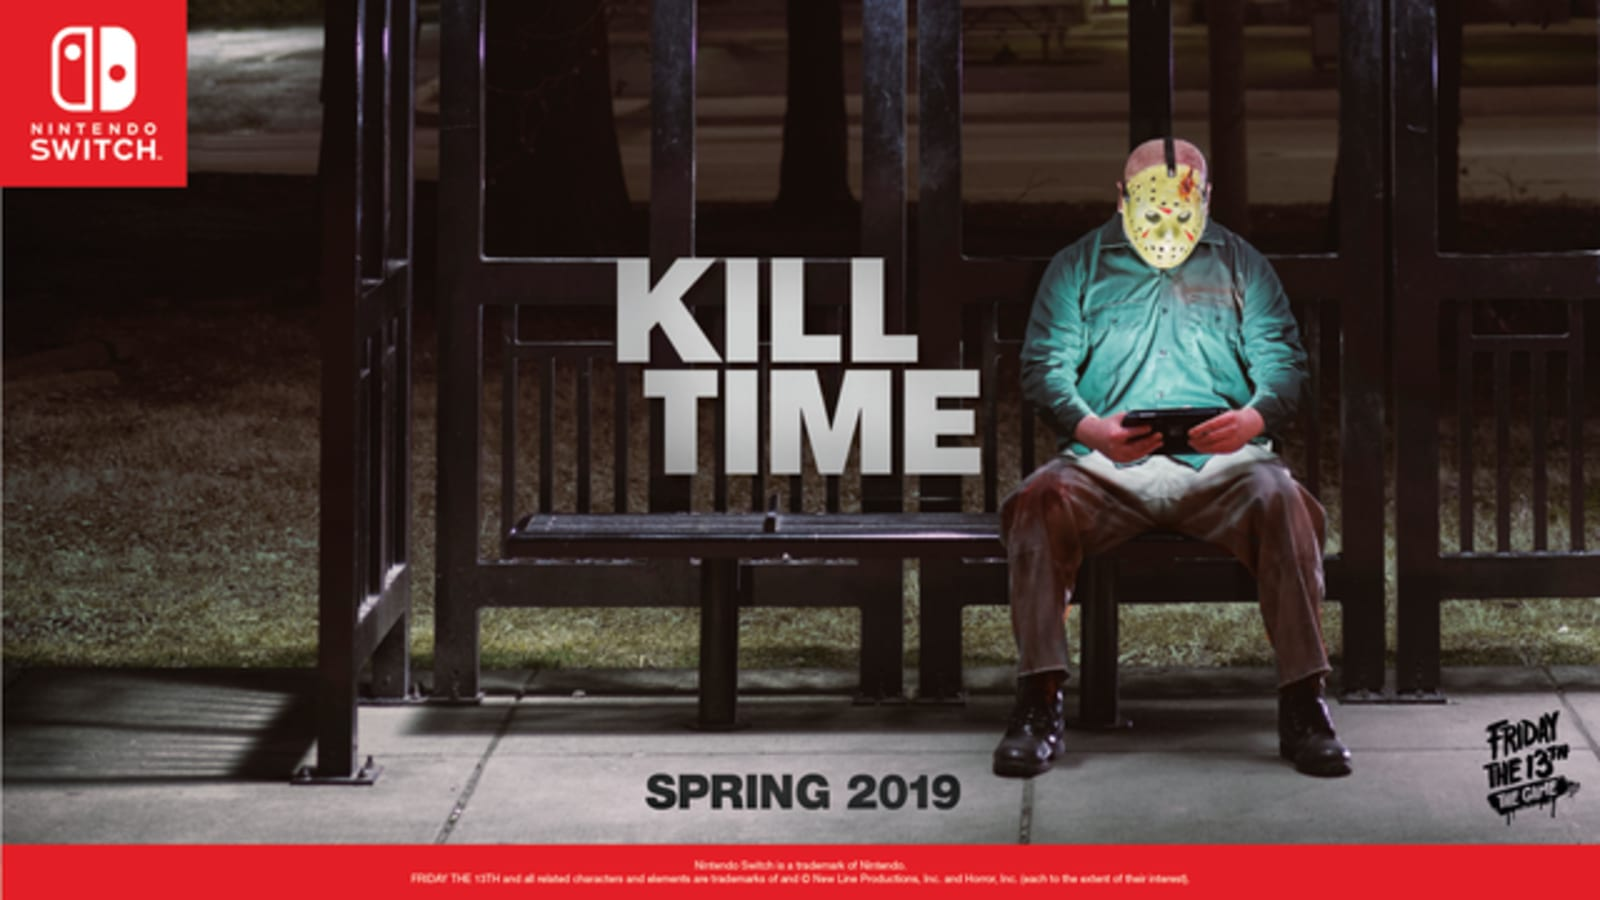 Friday the 13th: The Game on Nintendo Switch